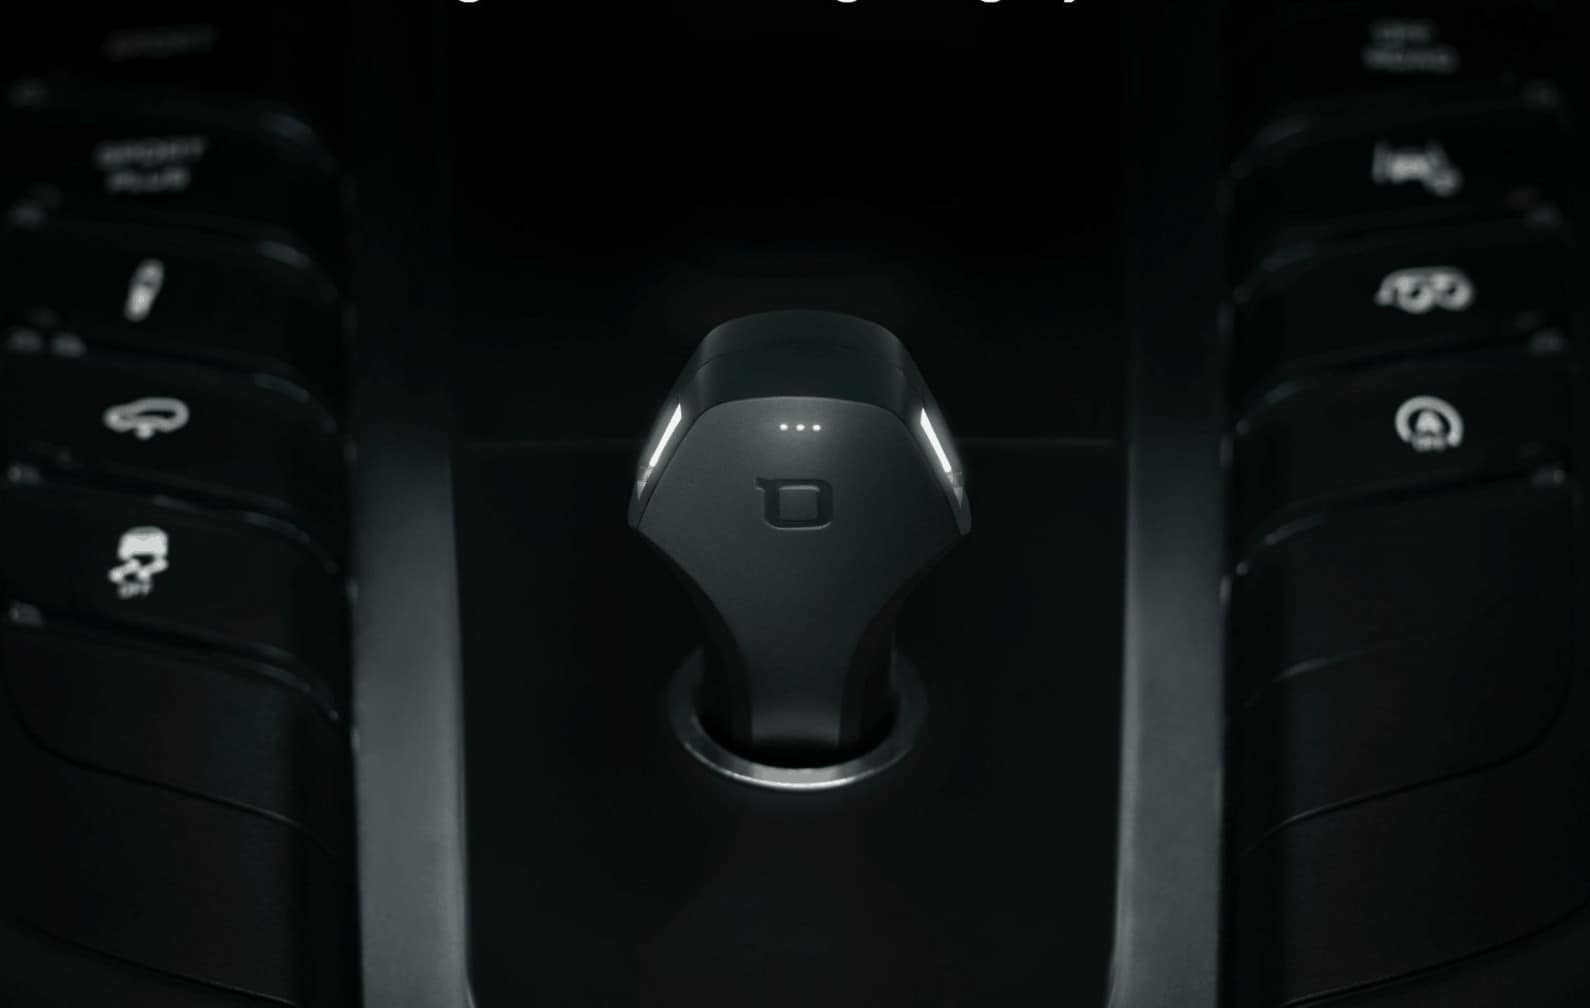 Zus Smart USB Charger